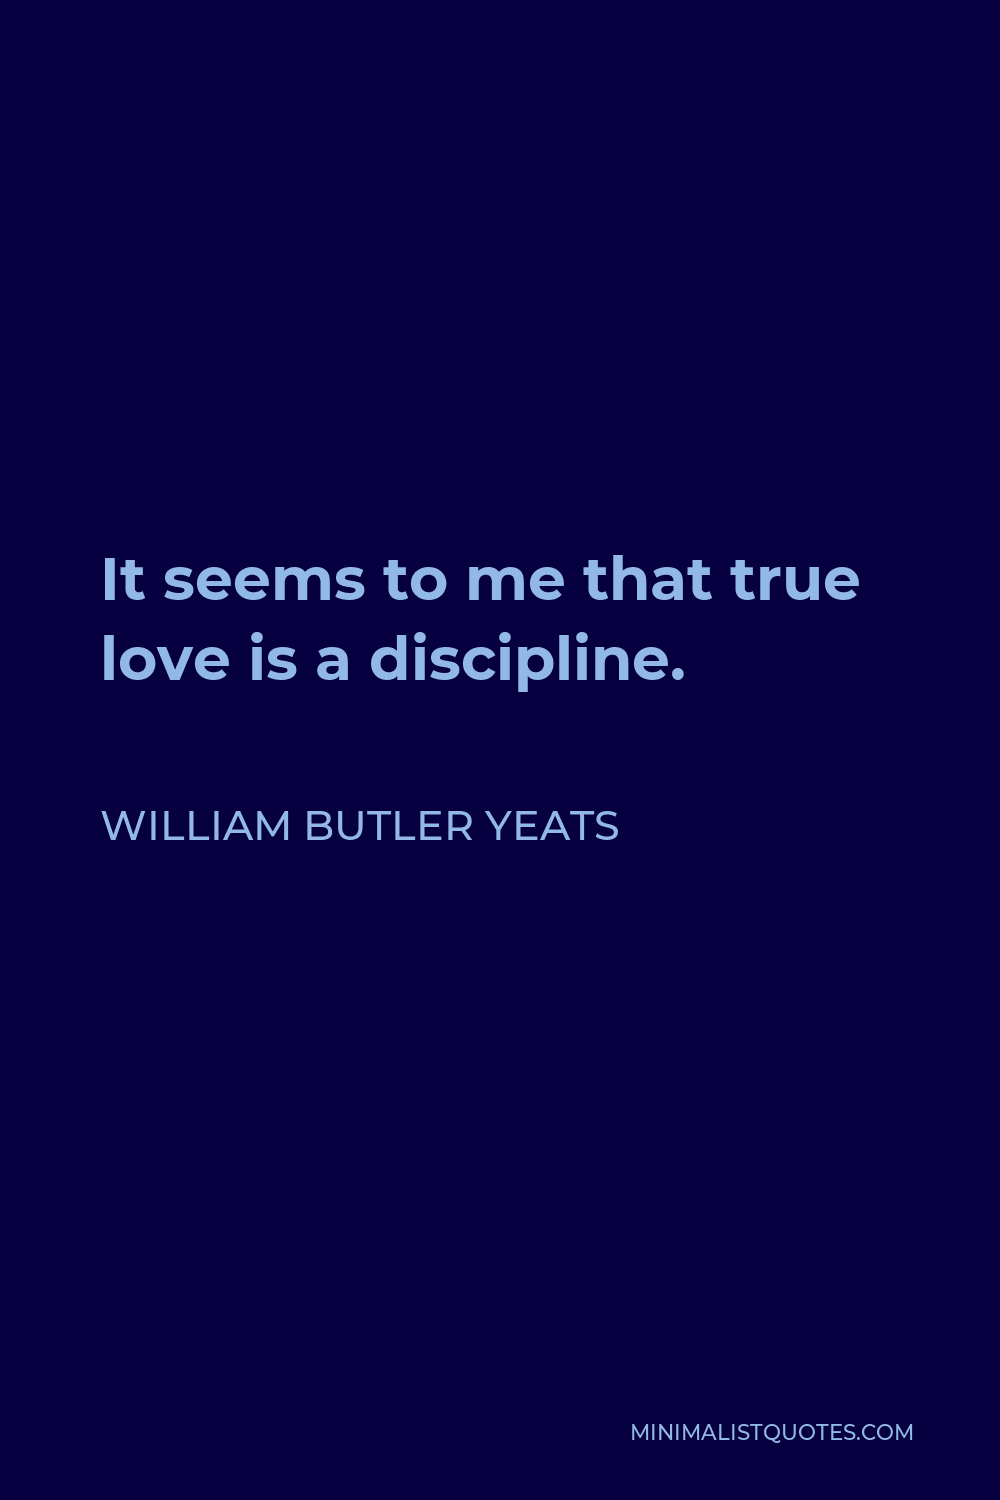 William Butler Yeats Quote - It seems to me that true love is a discipline.